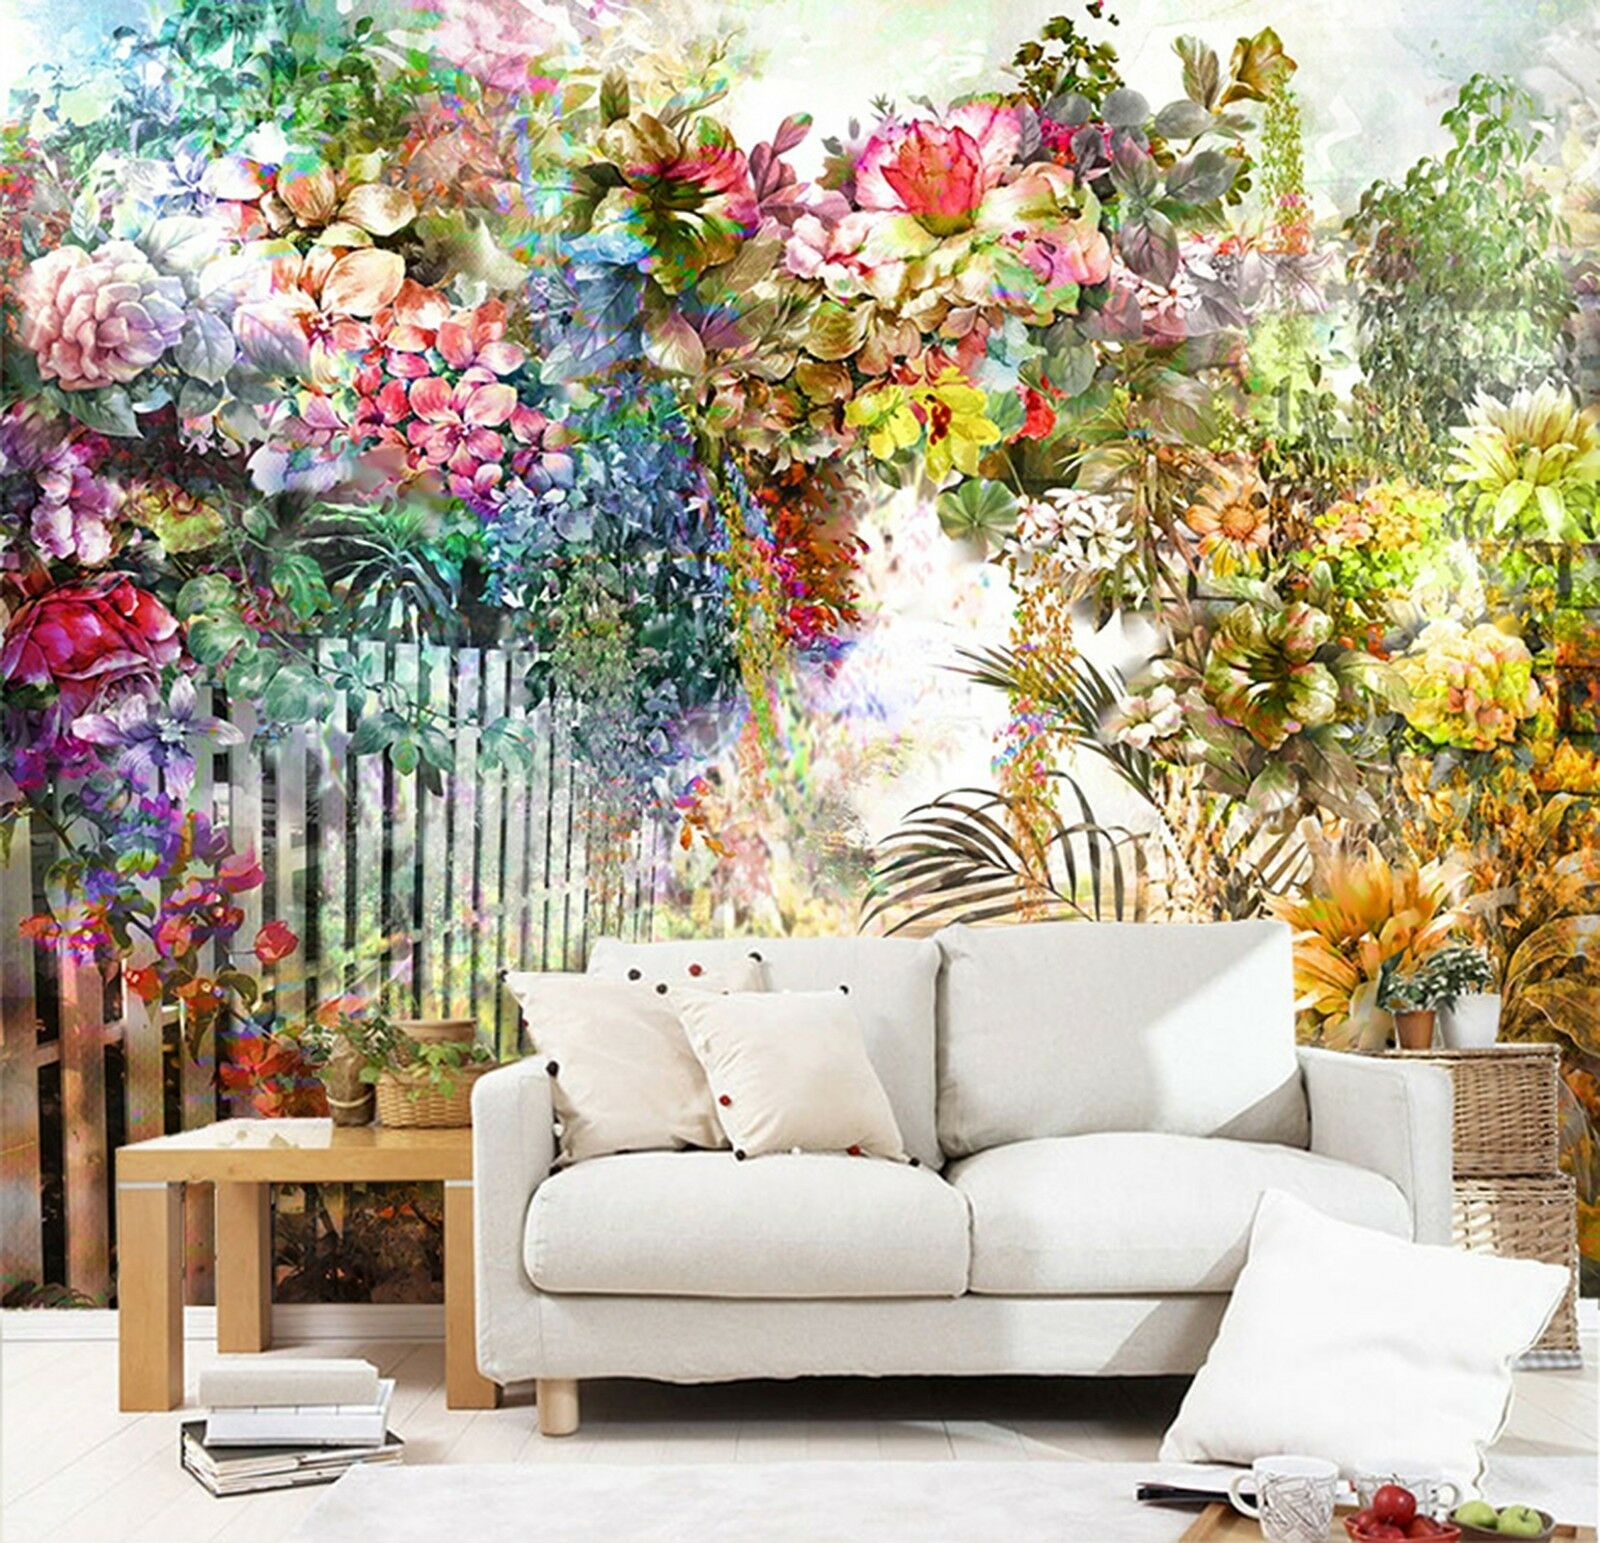 3D Flowers sunlight arch Wall Paper Print Decal Wall Deco Indoor wall Mural